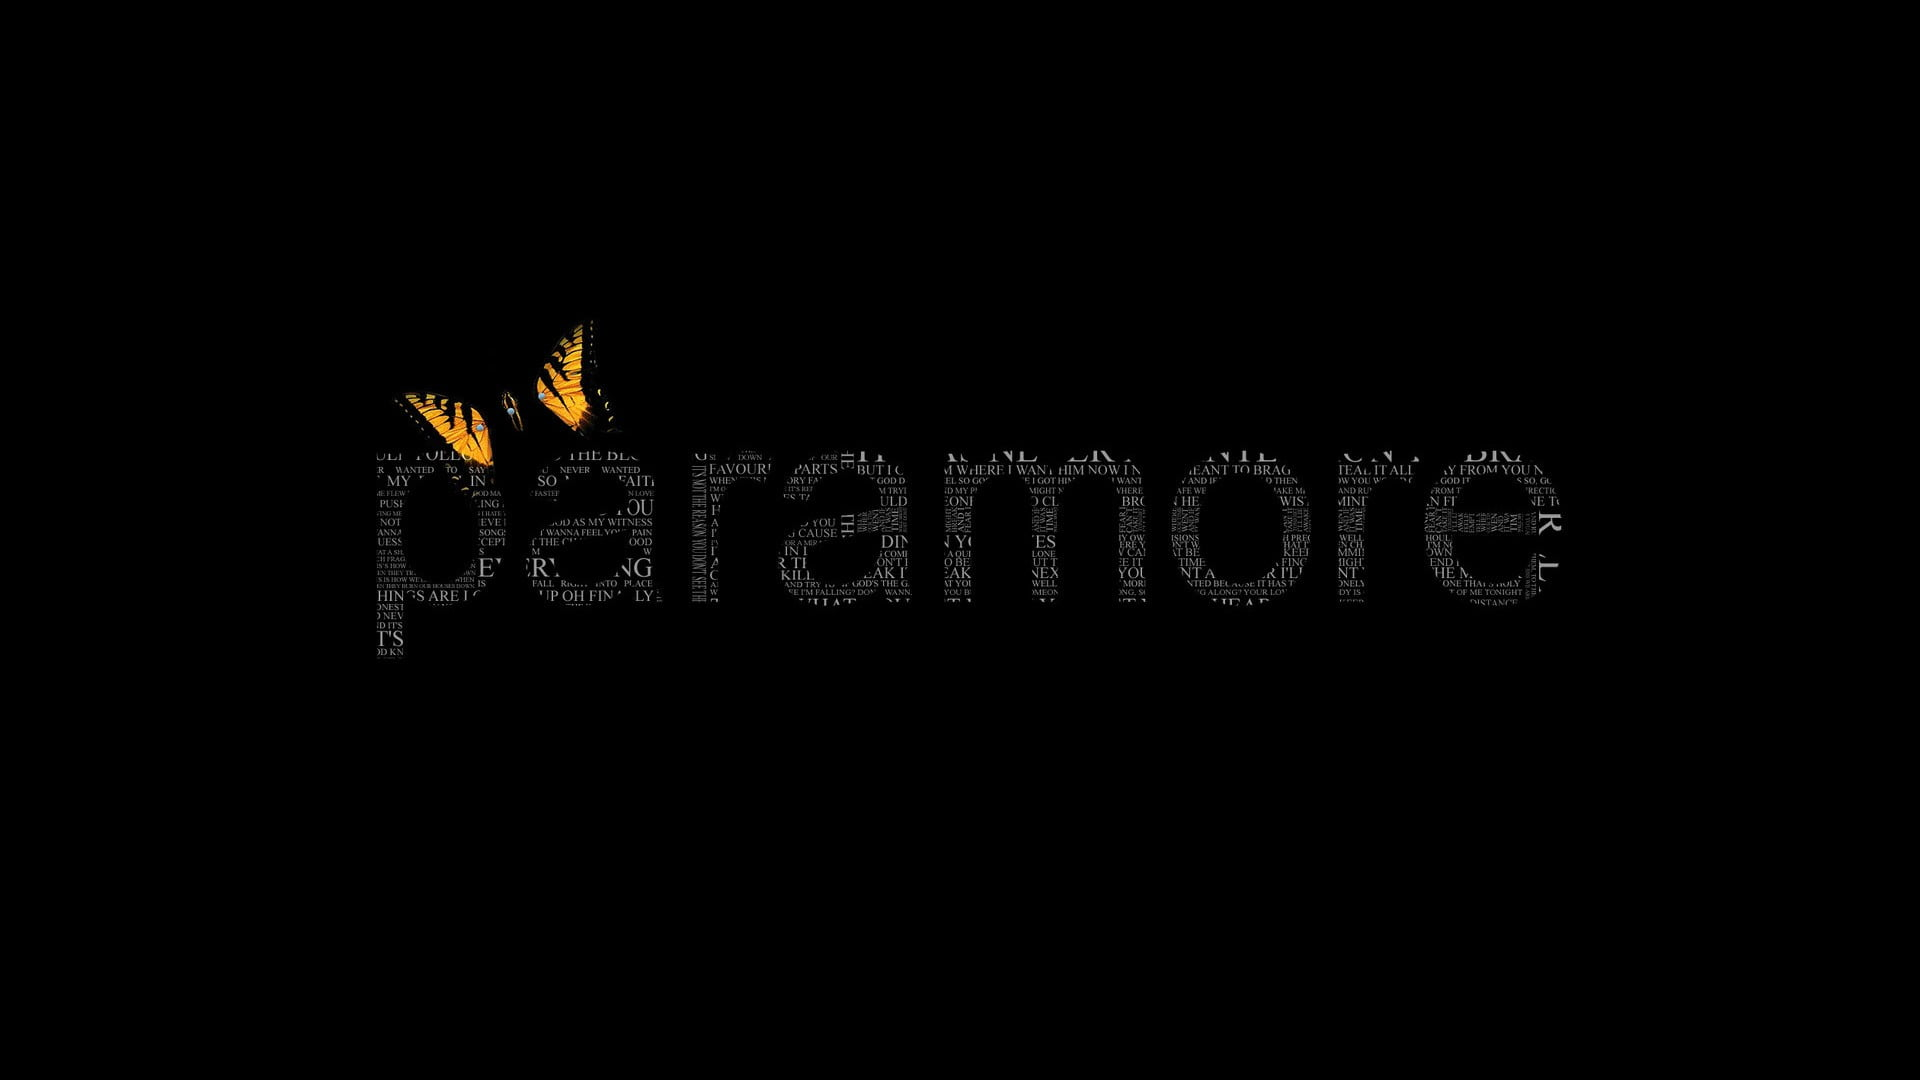 paramore text overlay with